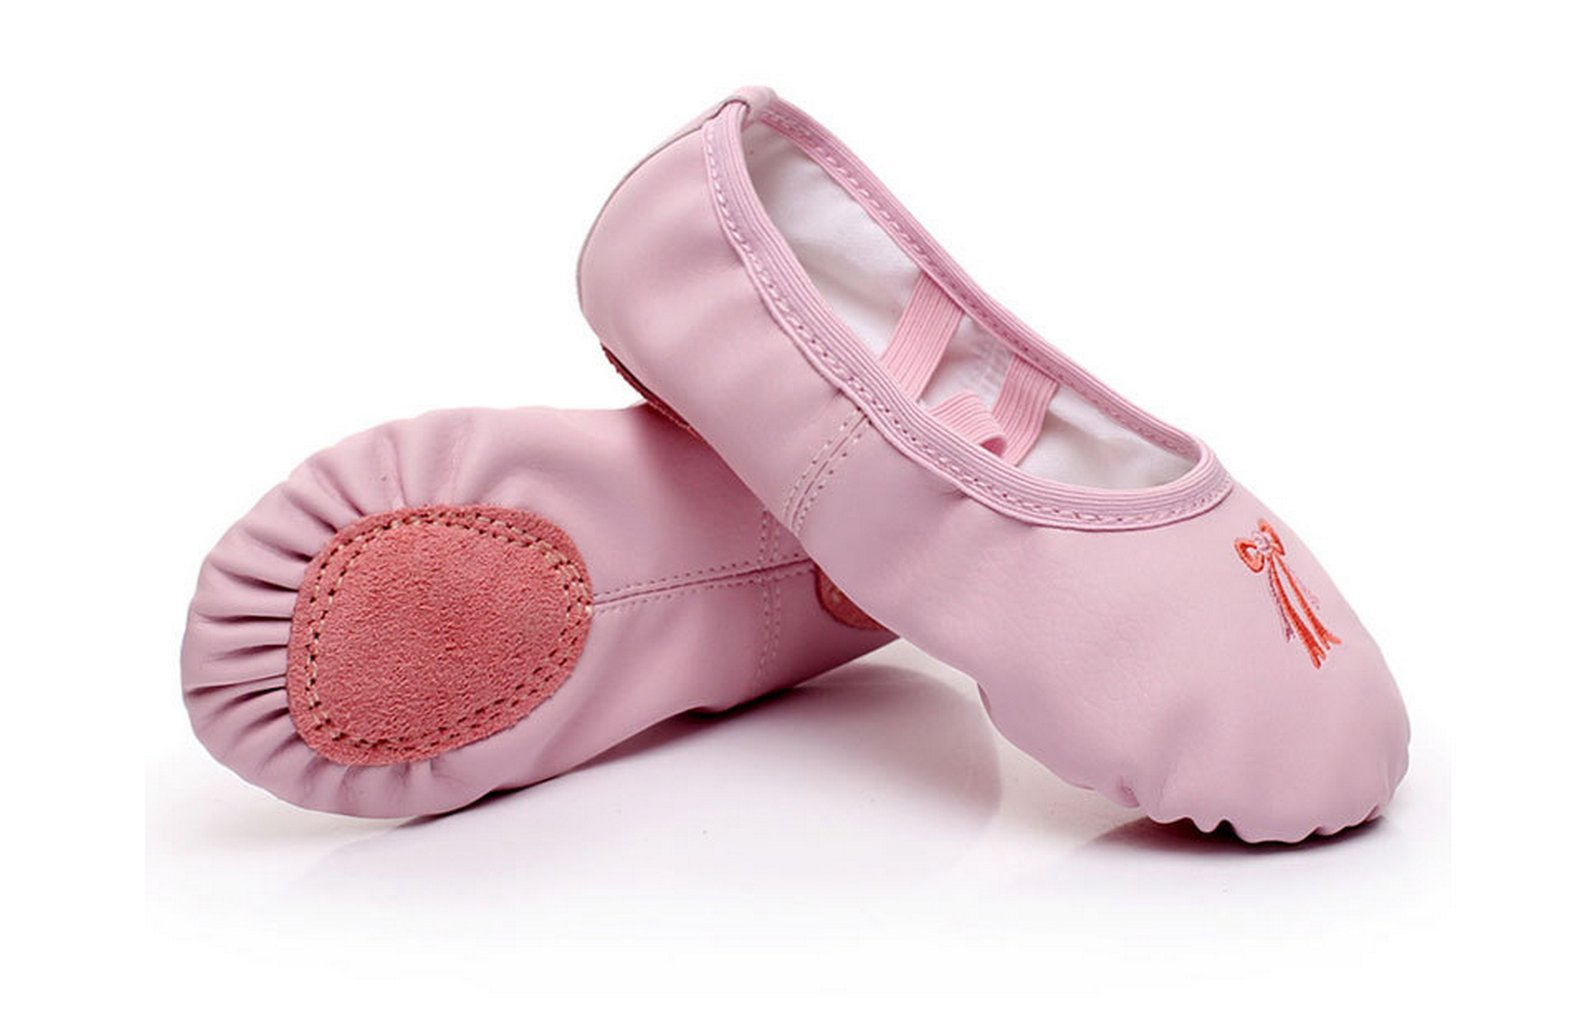 Girls Leather Ballet Shoes Pink Dance Gymnastics Shoes Split Sole Flat (Little Kid 11M - Foot Length: 6.69 inches/17cm)